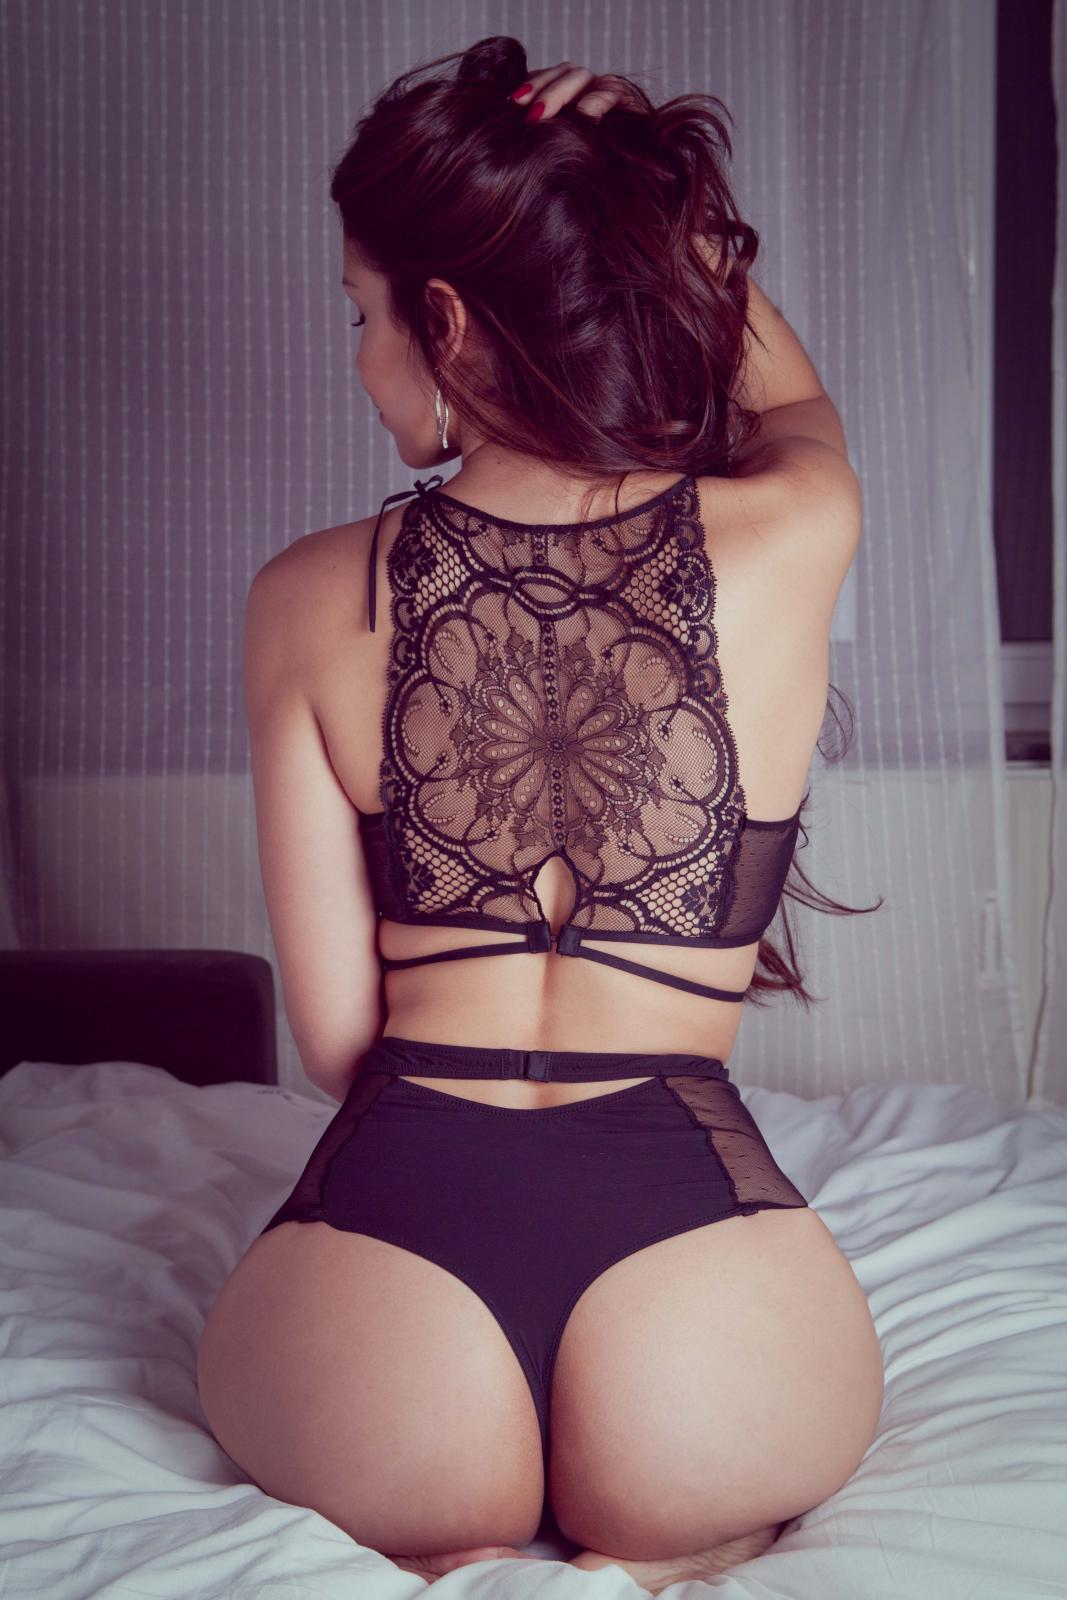 Talisa Thalys - Available in Sydney CBD for incalls